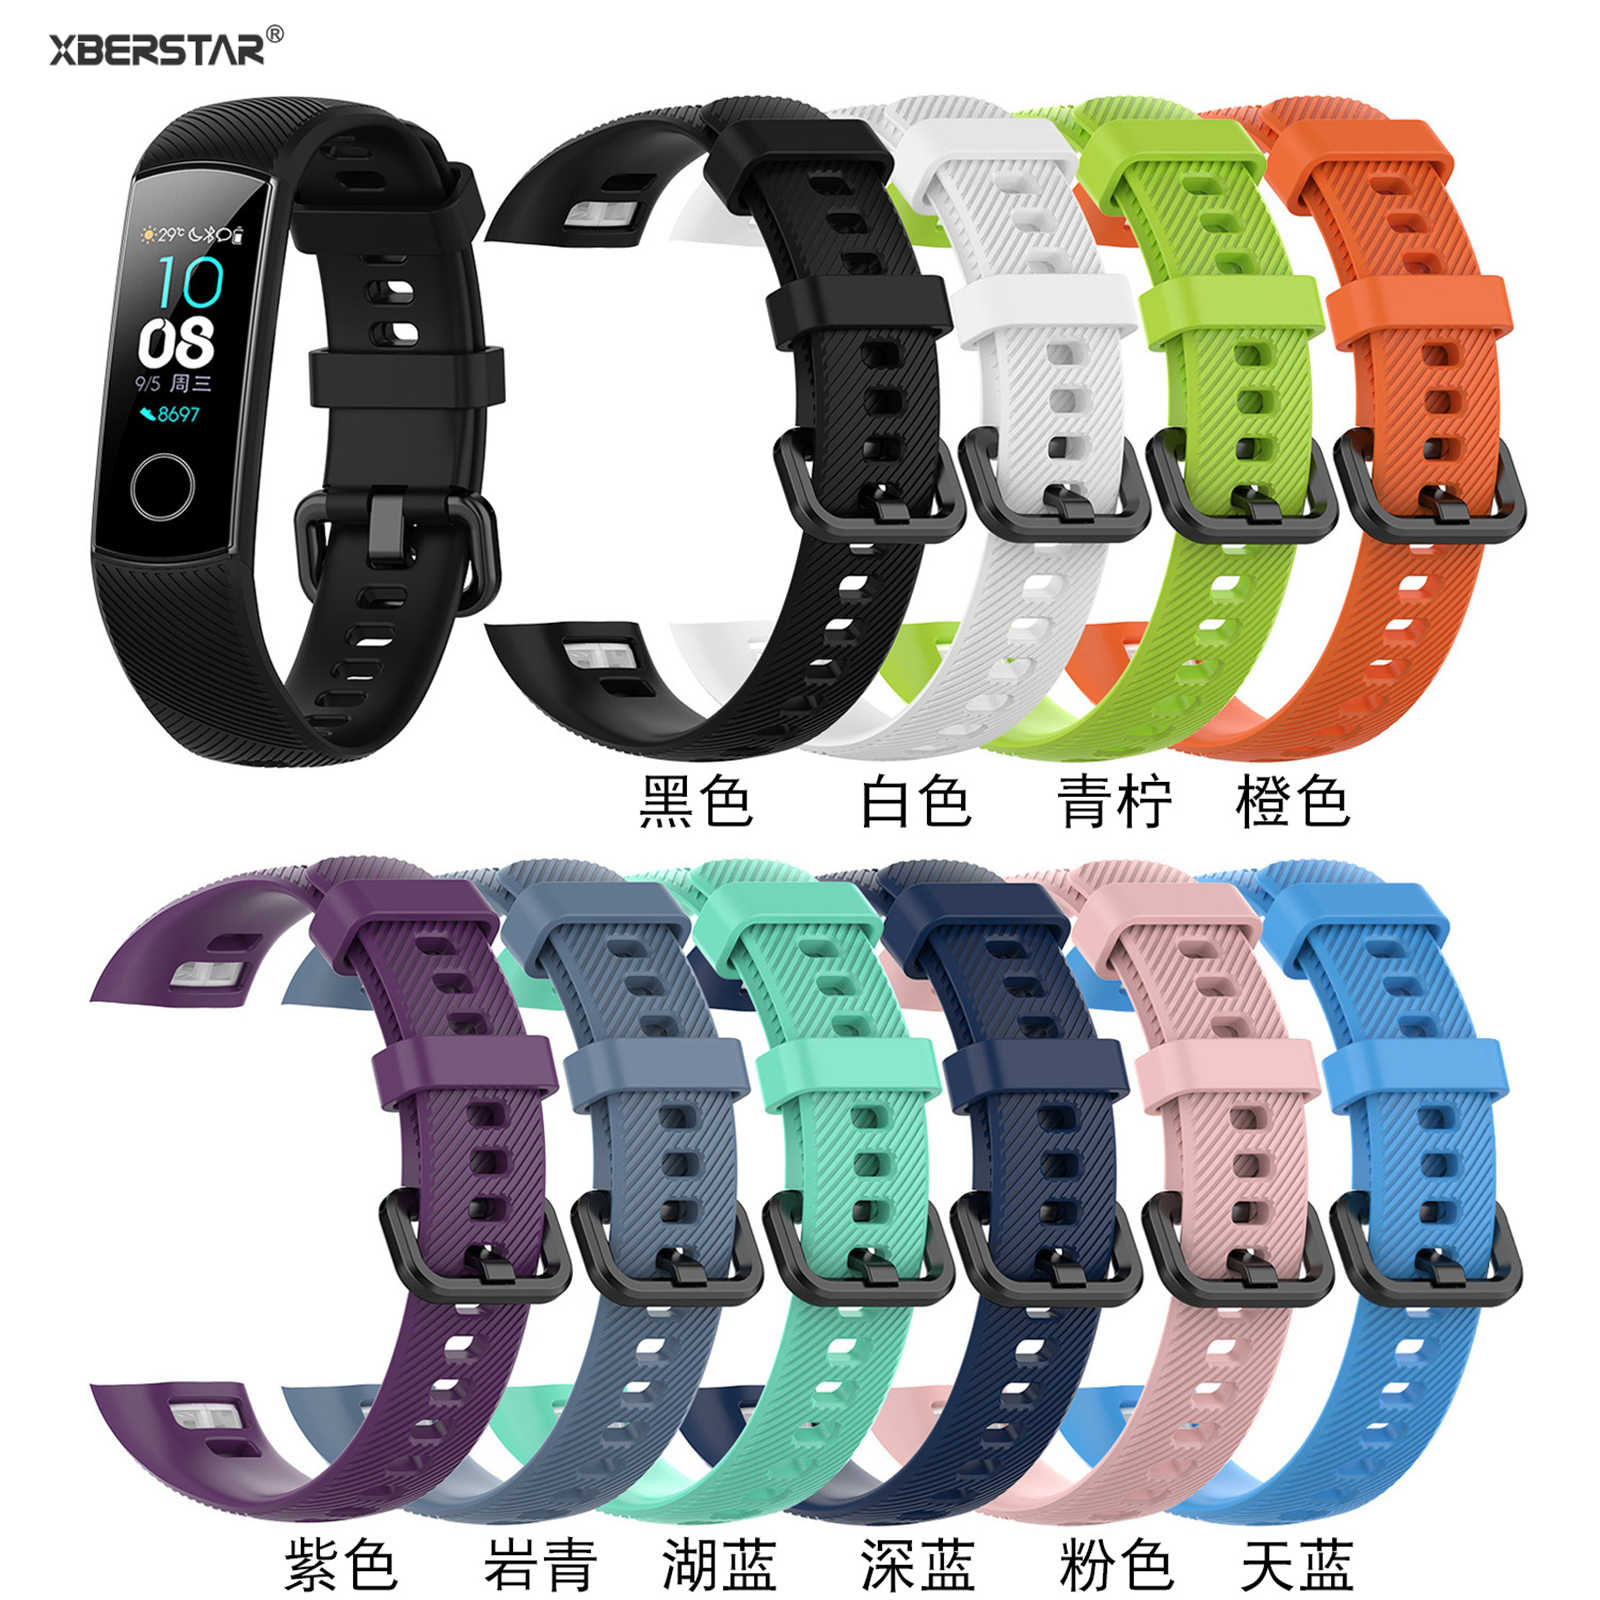 Replacement Wristwatch Band Bracelet Strap for Huawei Honor 4 Smart Watch Wrist Band Strap for Honor 4 Smart Bracelet